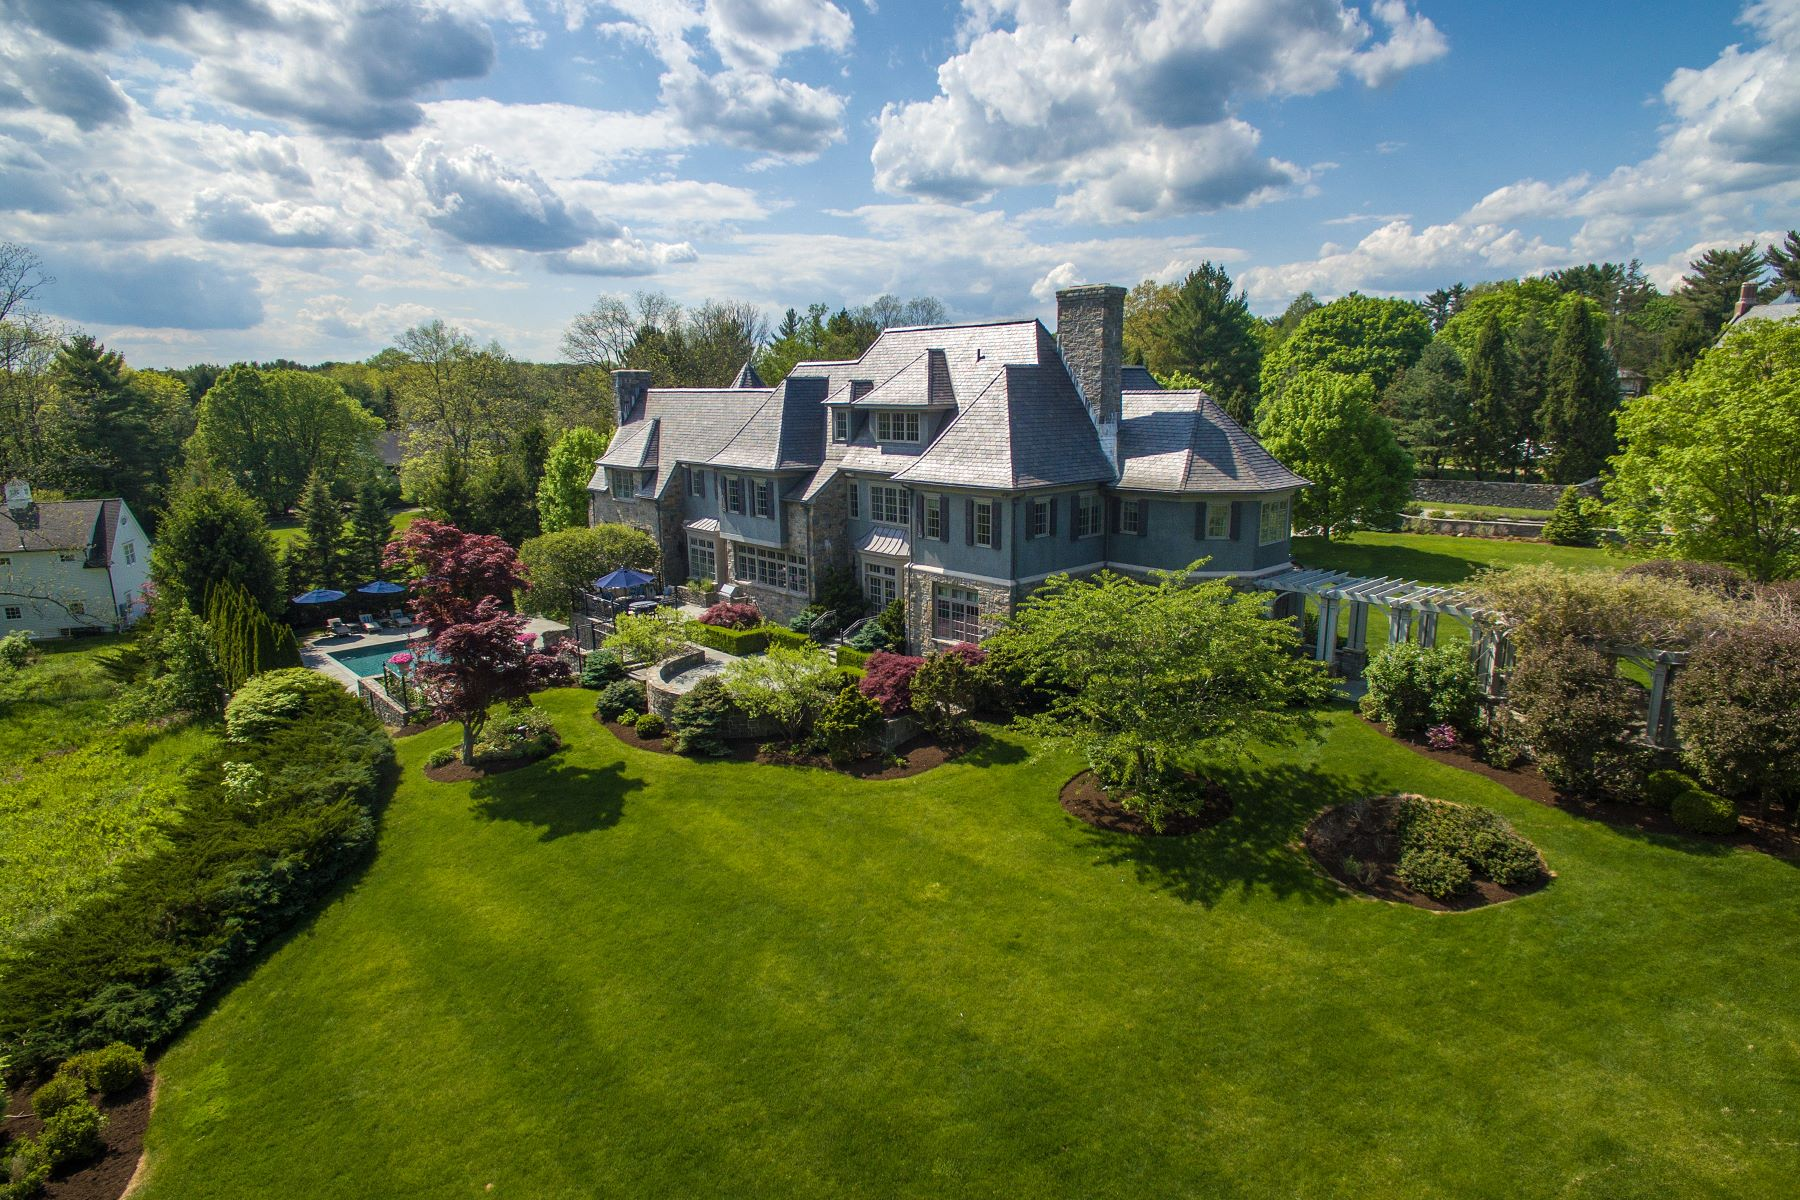 Single Family Home for Sale at 36 Hemlock Hill Road New Canaan, Connecticut 06840 United States